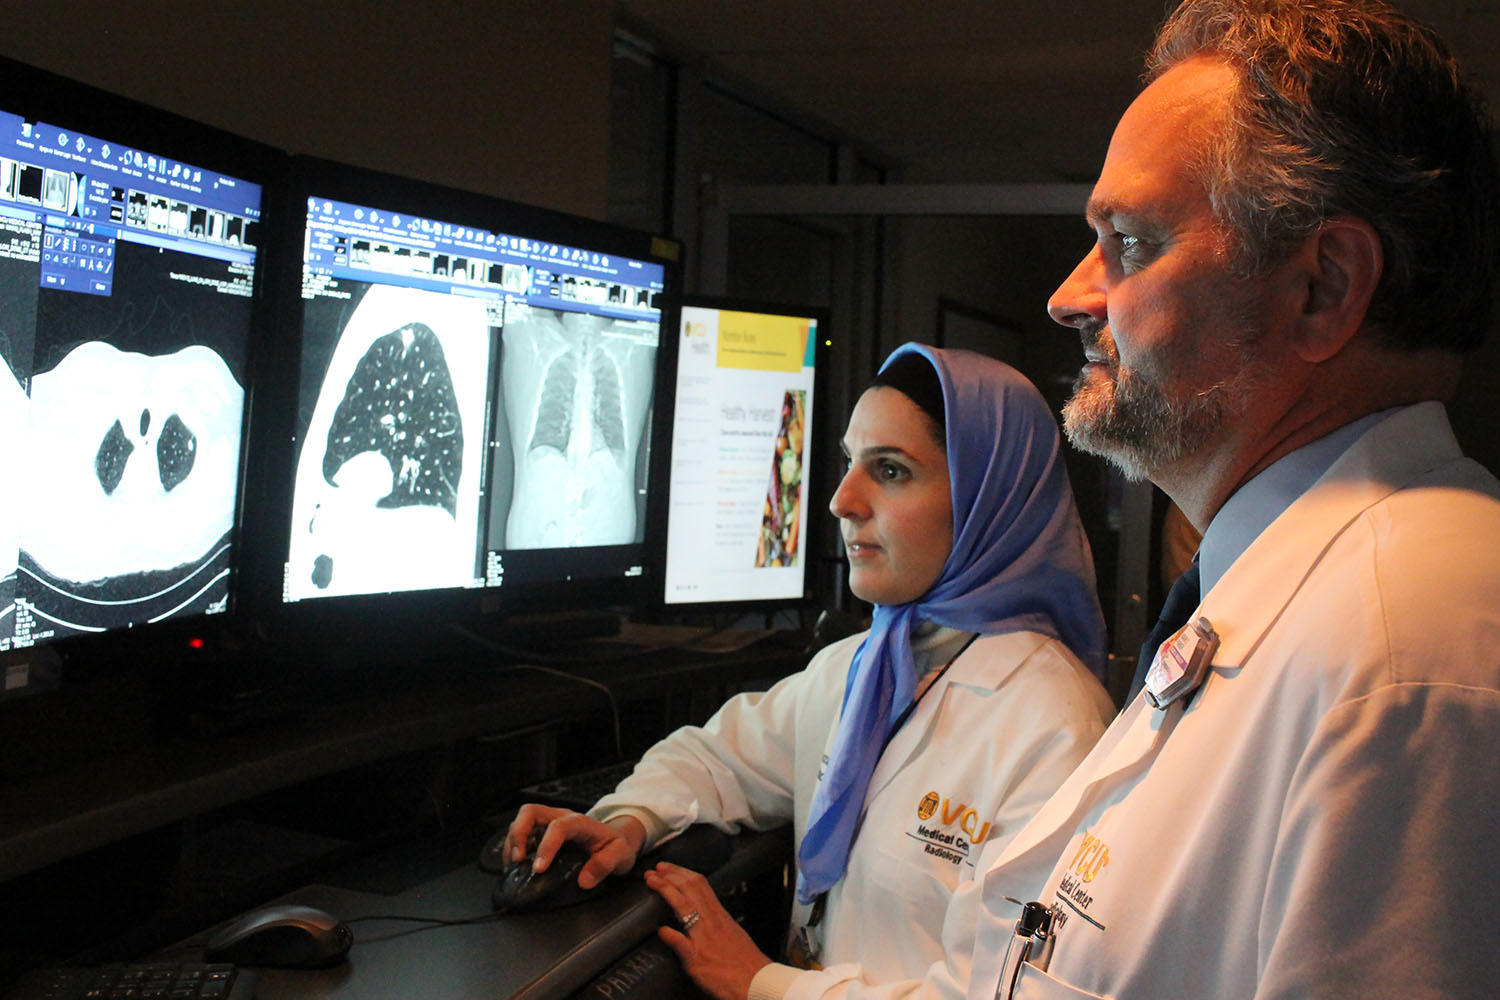 Doctors look at a lung scan.